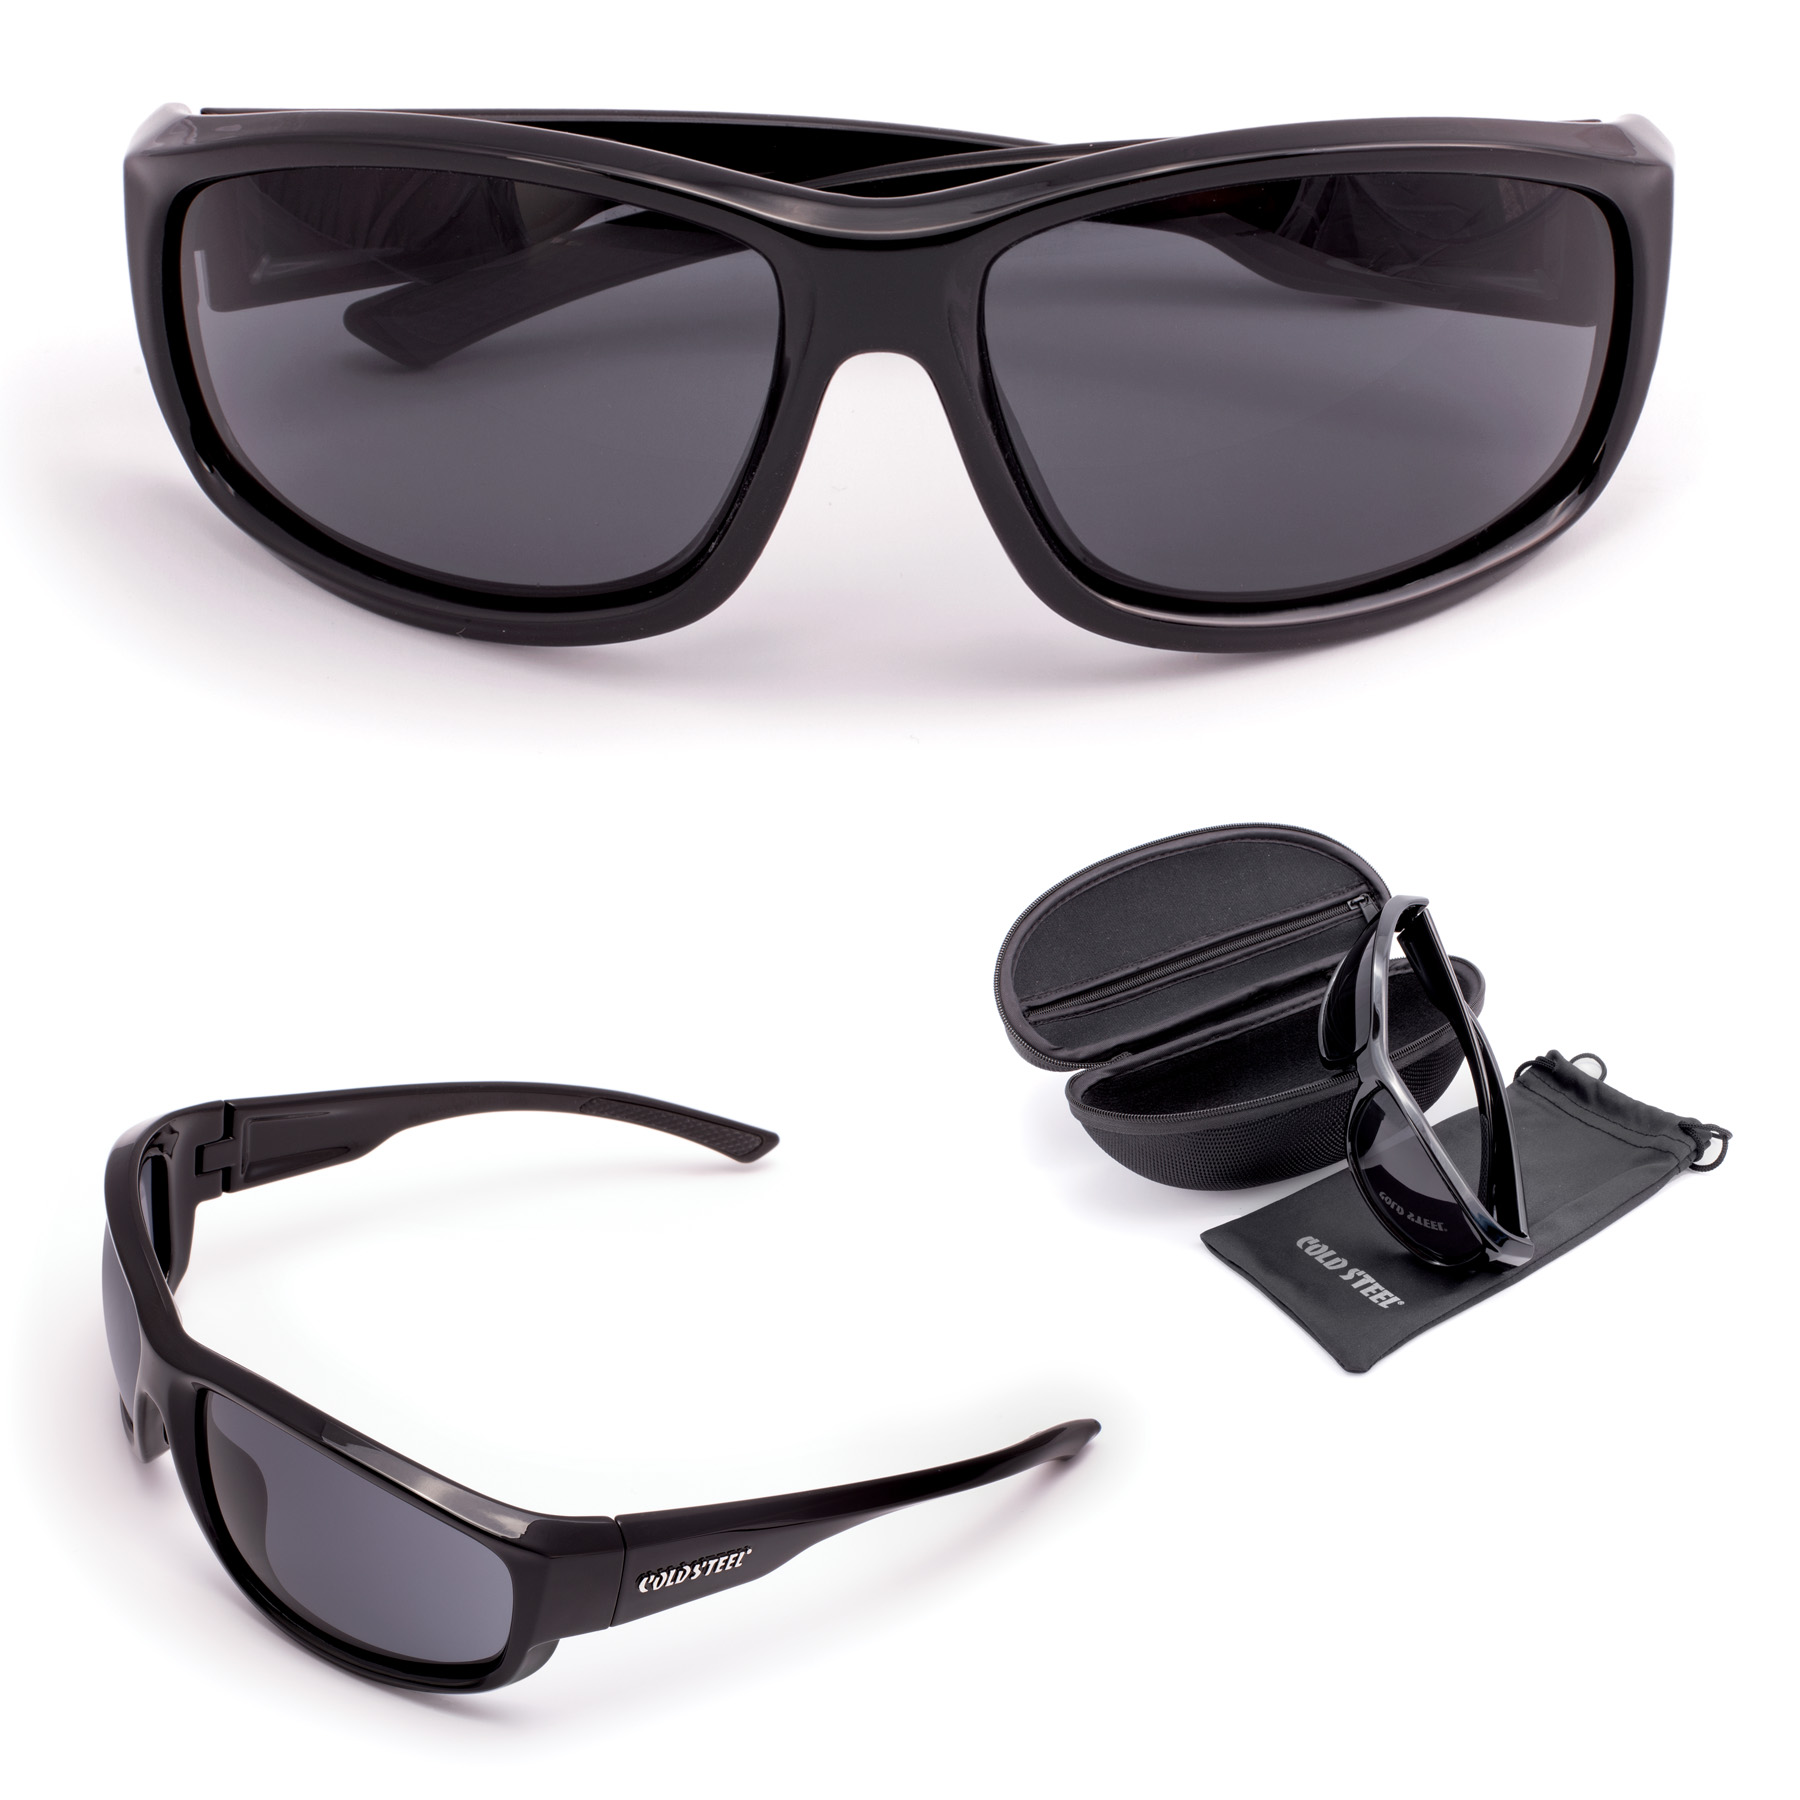 EW21 - COLD STEEL Battle Shades Mark II (Gloss Black)